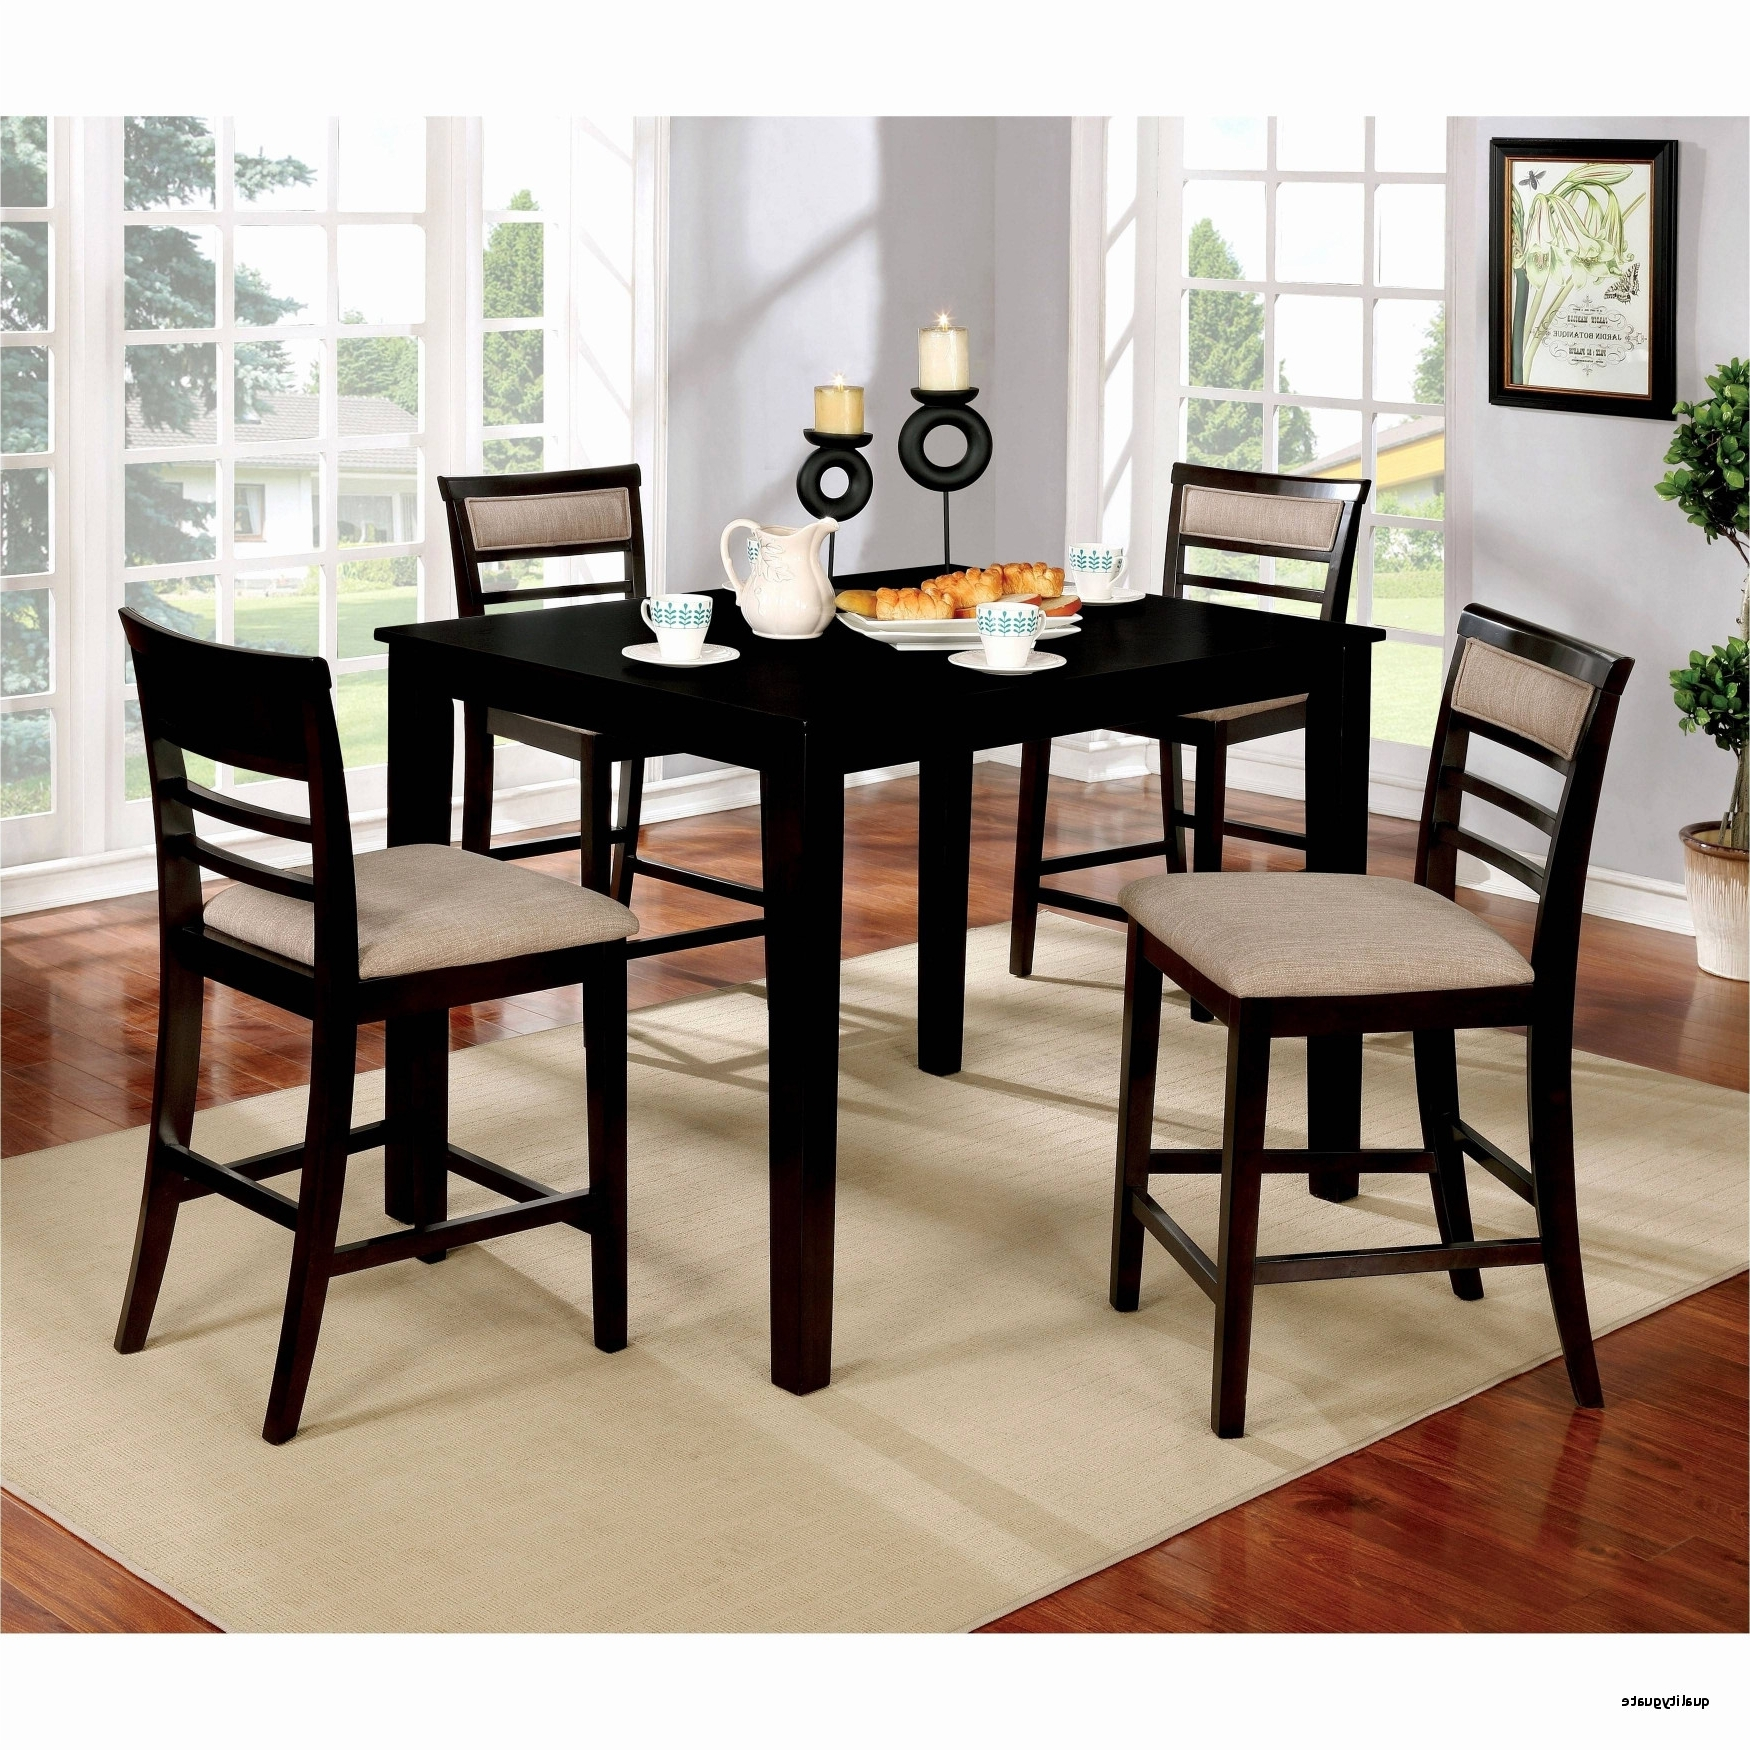 Two Person Dining Tables Pertaining To 2018 2 Person Dining Set – Home Design Ideas And Pictures (View 21 of 25)